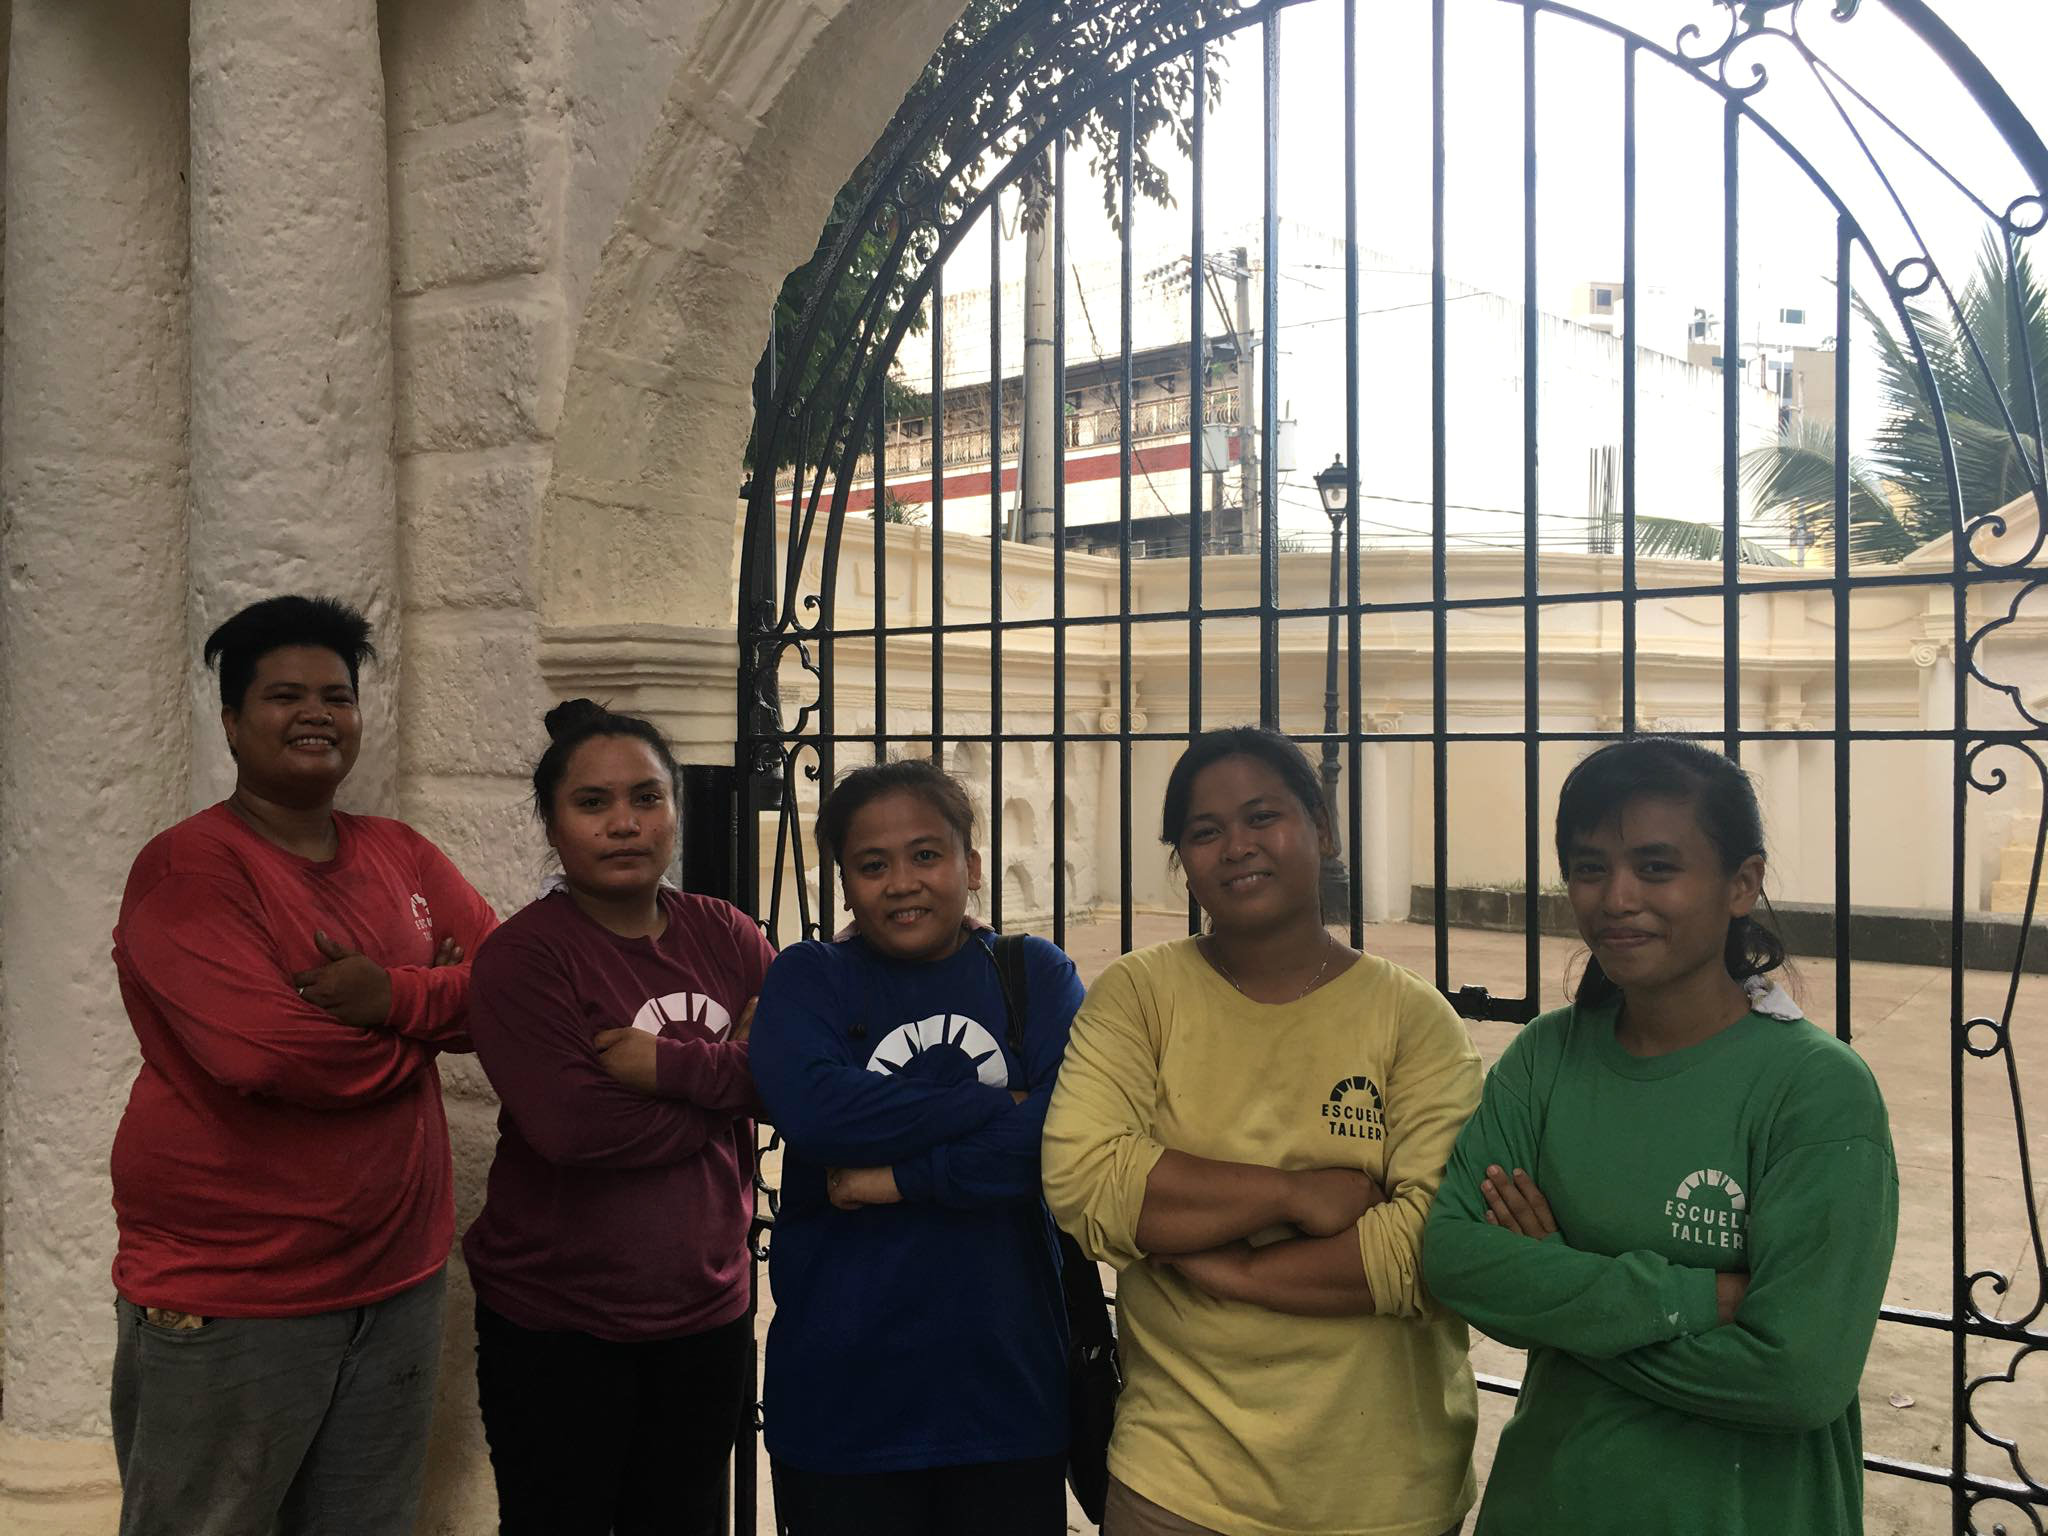 WOMEN. Analisa (third from left) and her fellow masons from Escuela Taller's conservation team. Photo by Fritzie Rodriguez/Rappler